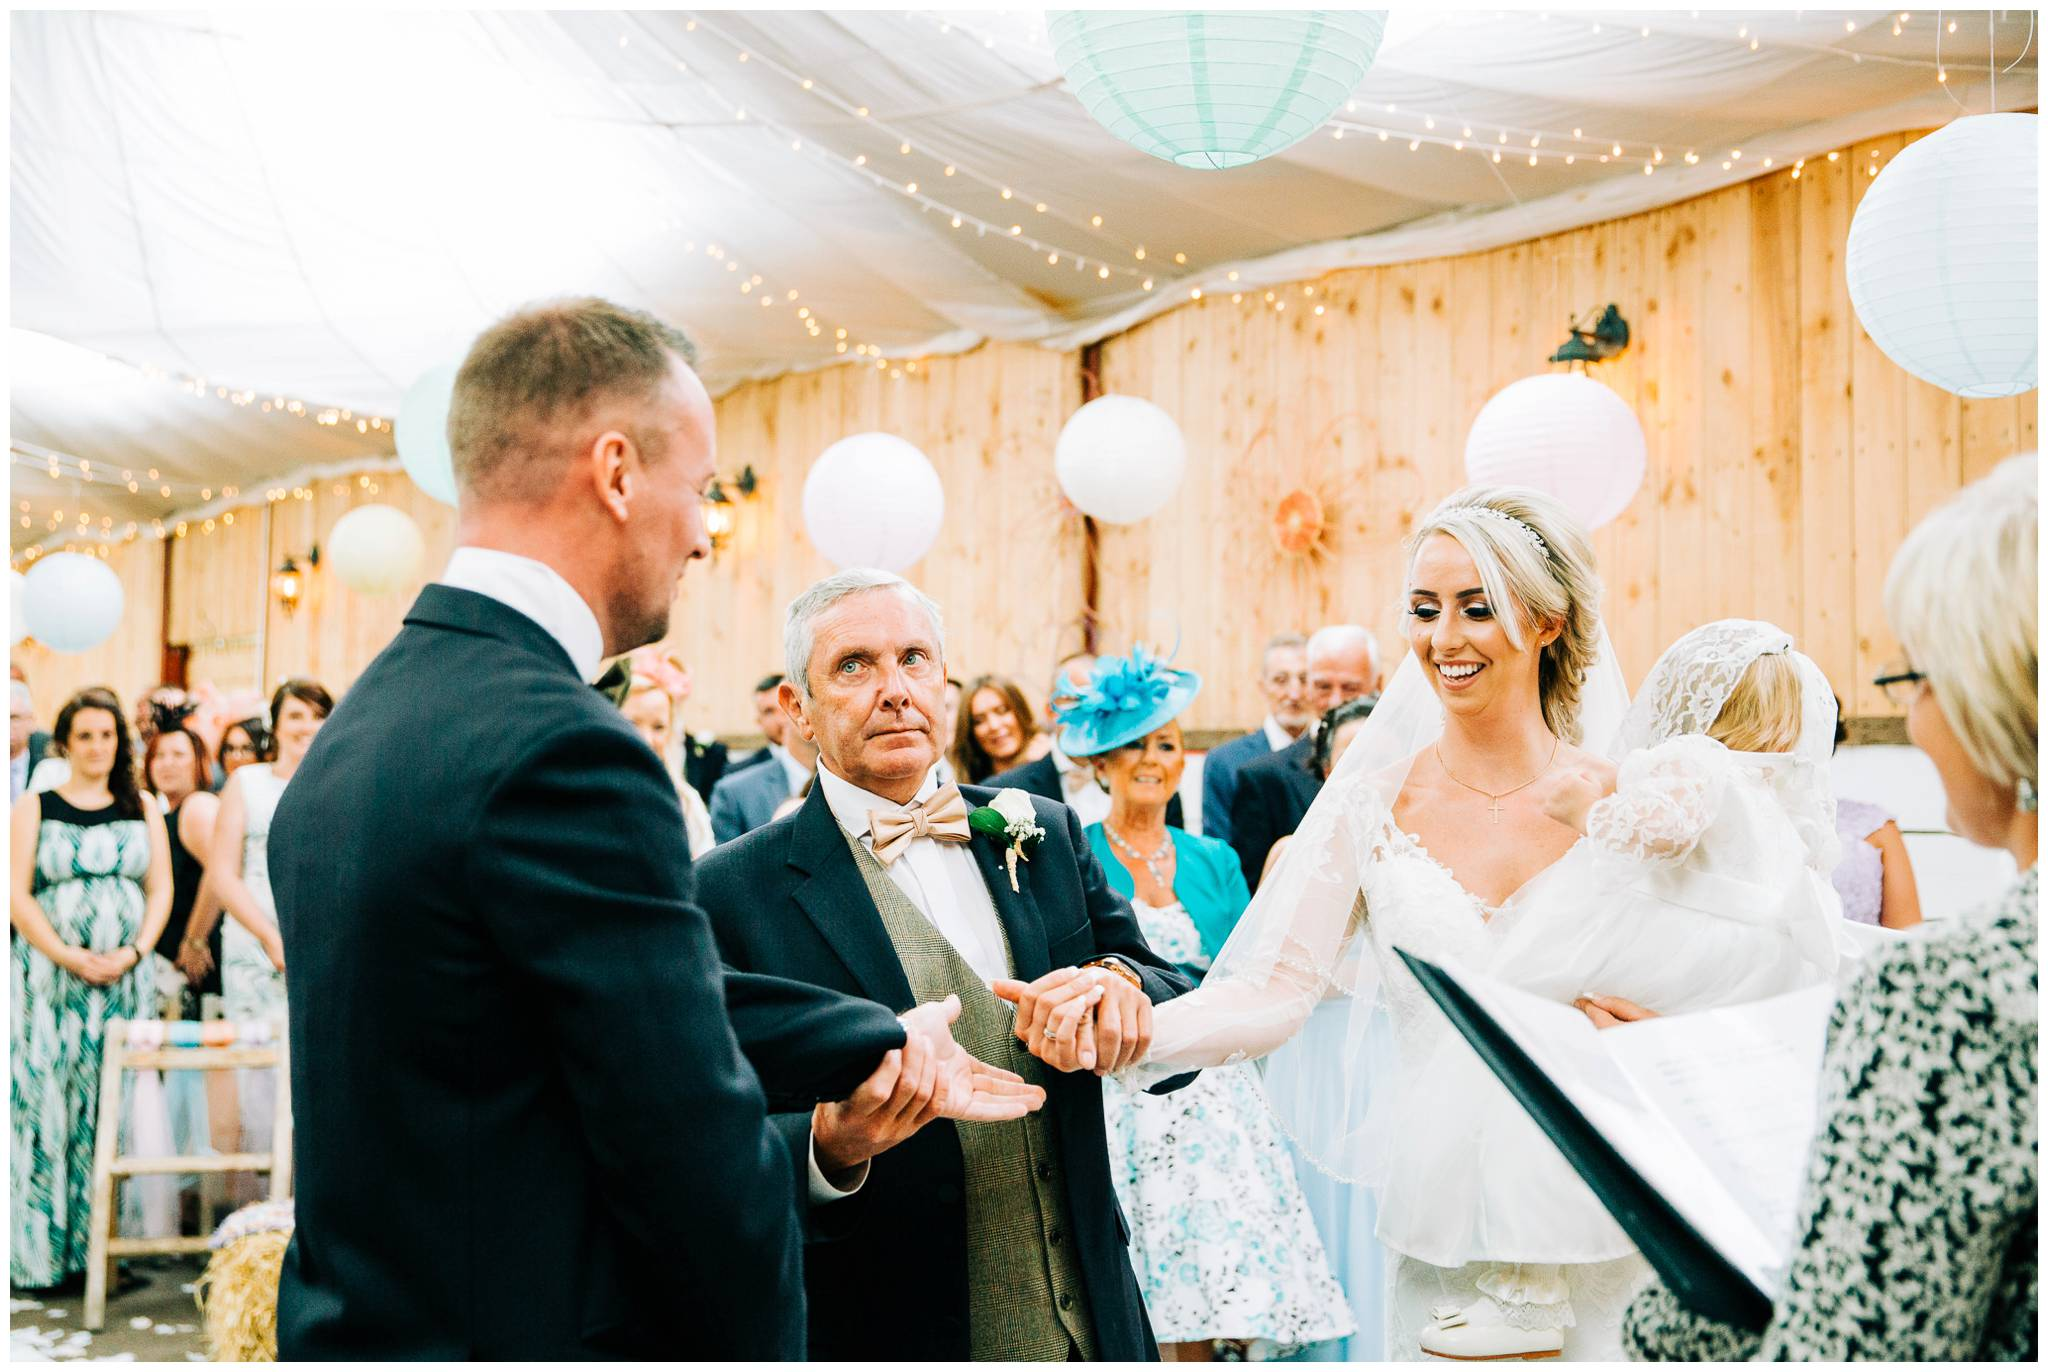 Festival wedding at Wellbeing Farm  - Bolton Wedding Photographer_0022.jpg